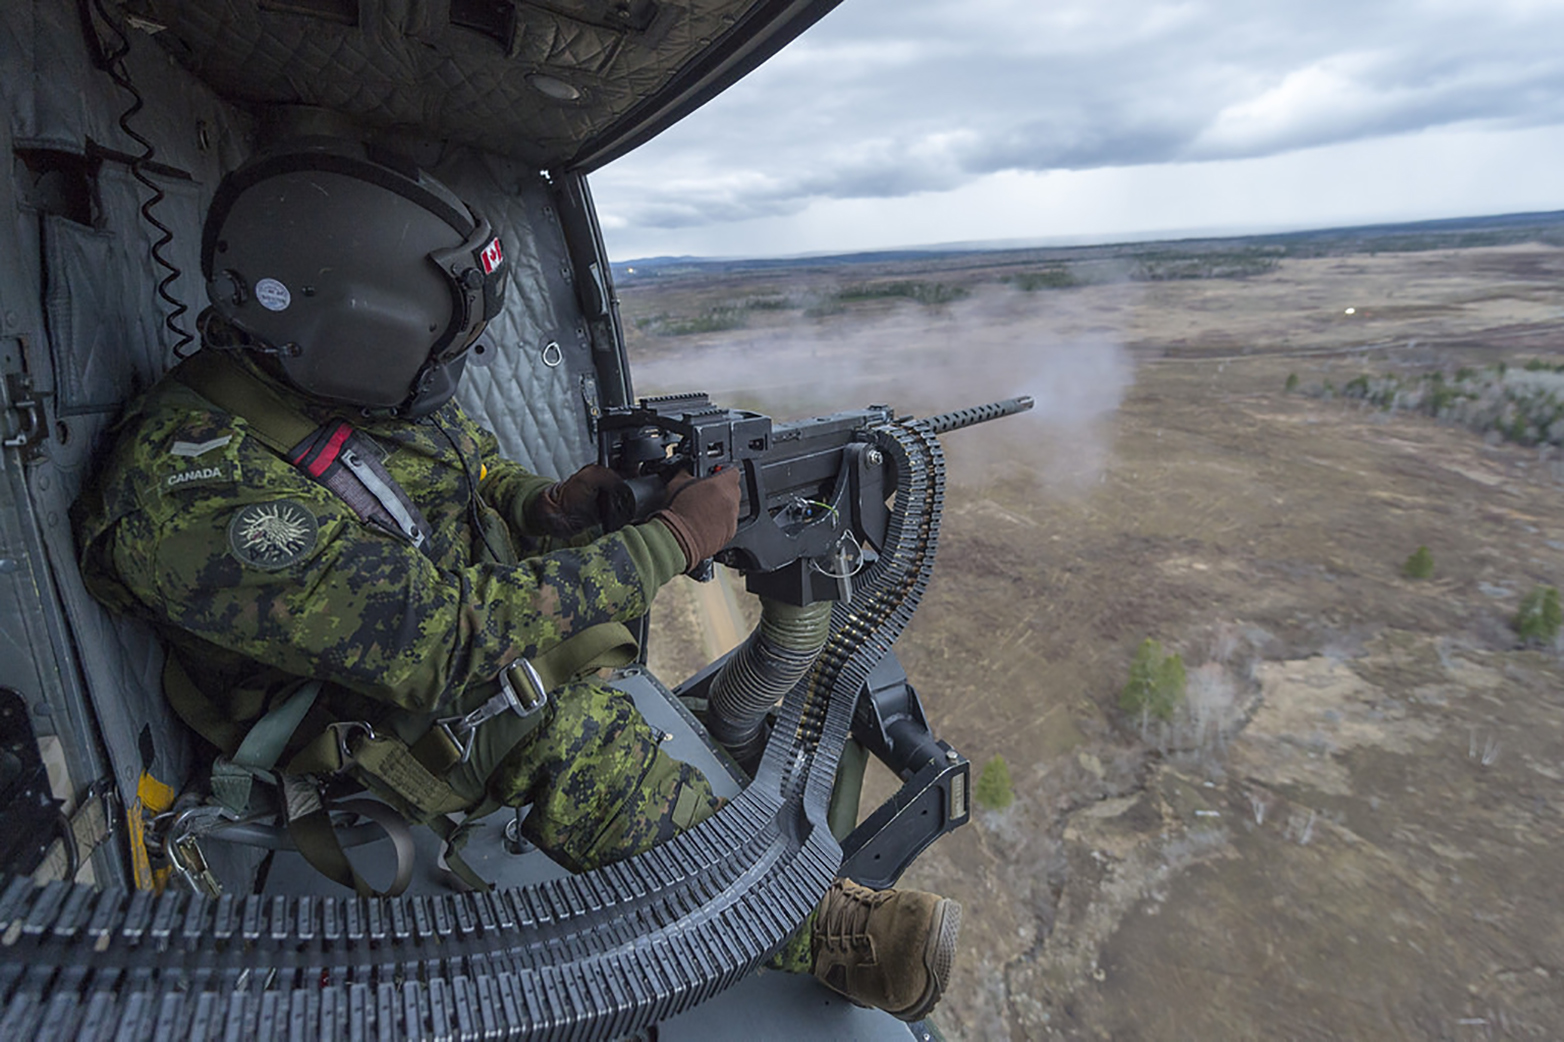 Corporal David Dube, from 430 Tactical Helicopter Squadron, practises his GAU-21 .50 calibre machine gun skills in the training area at 5th Canadian Division Support Group Gagetown, in New Brunswick; on May 3, 2017. PHOTO: Corporal Peter Ford, GN33-2017-0515-020